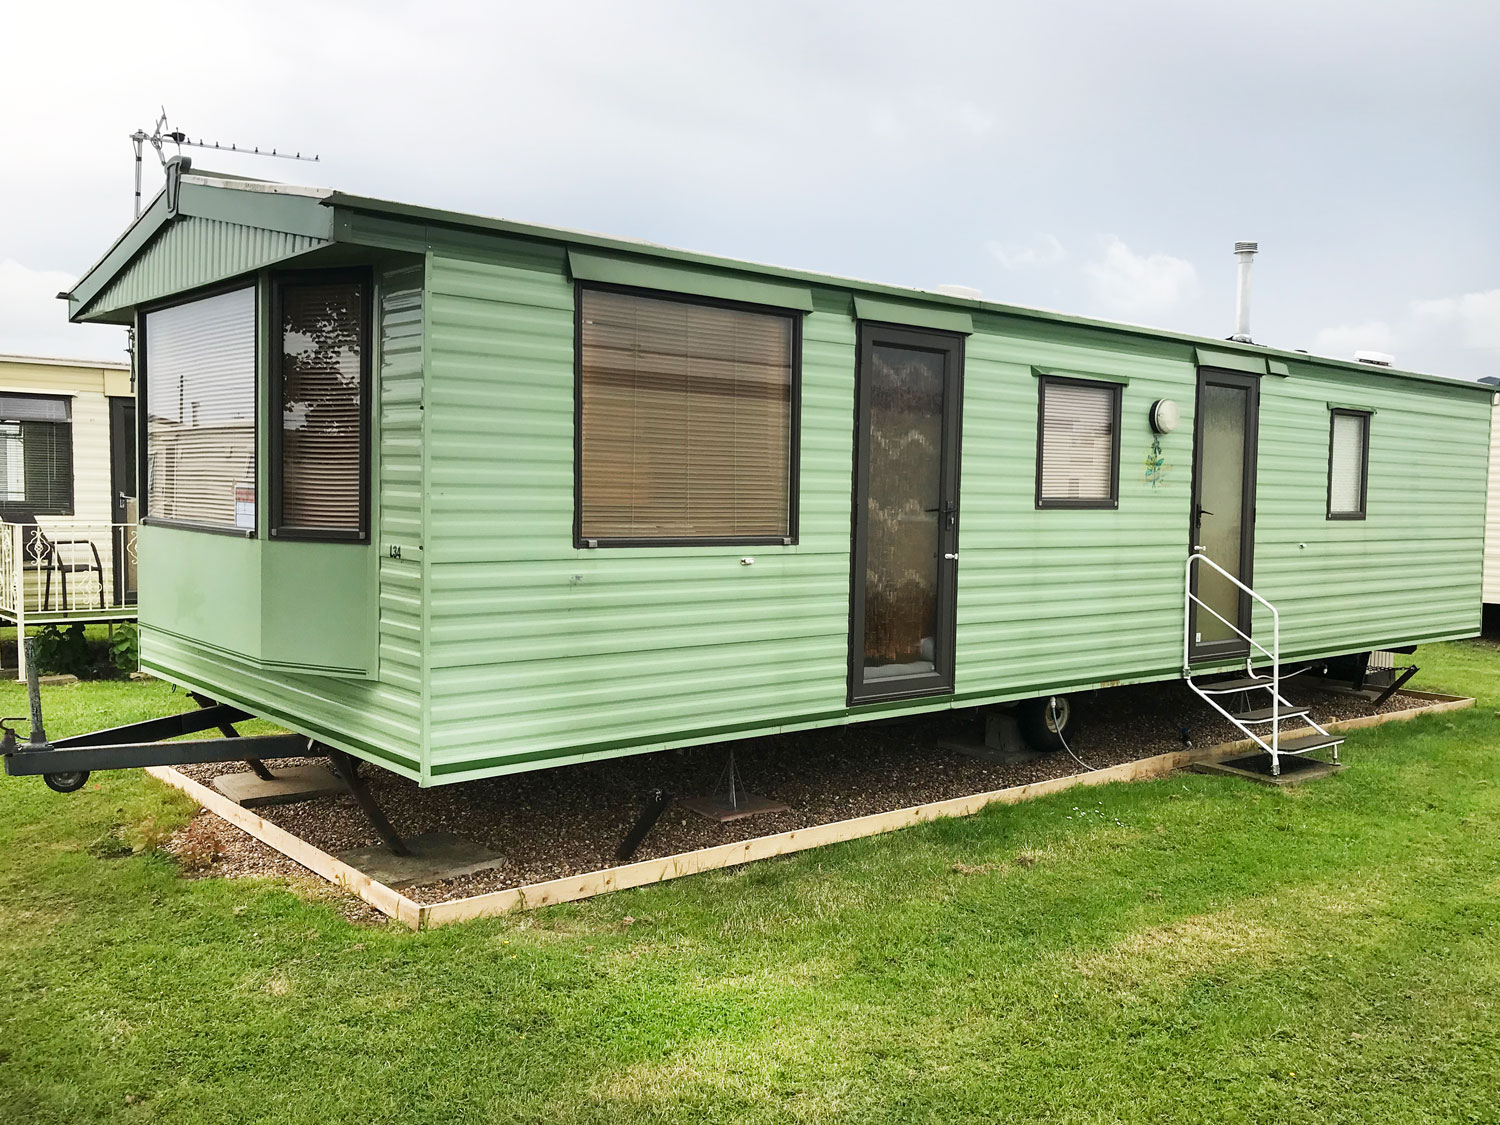 2004 Atlas Moonstone for sale - Lincolnshire